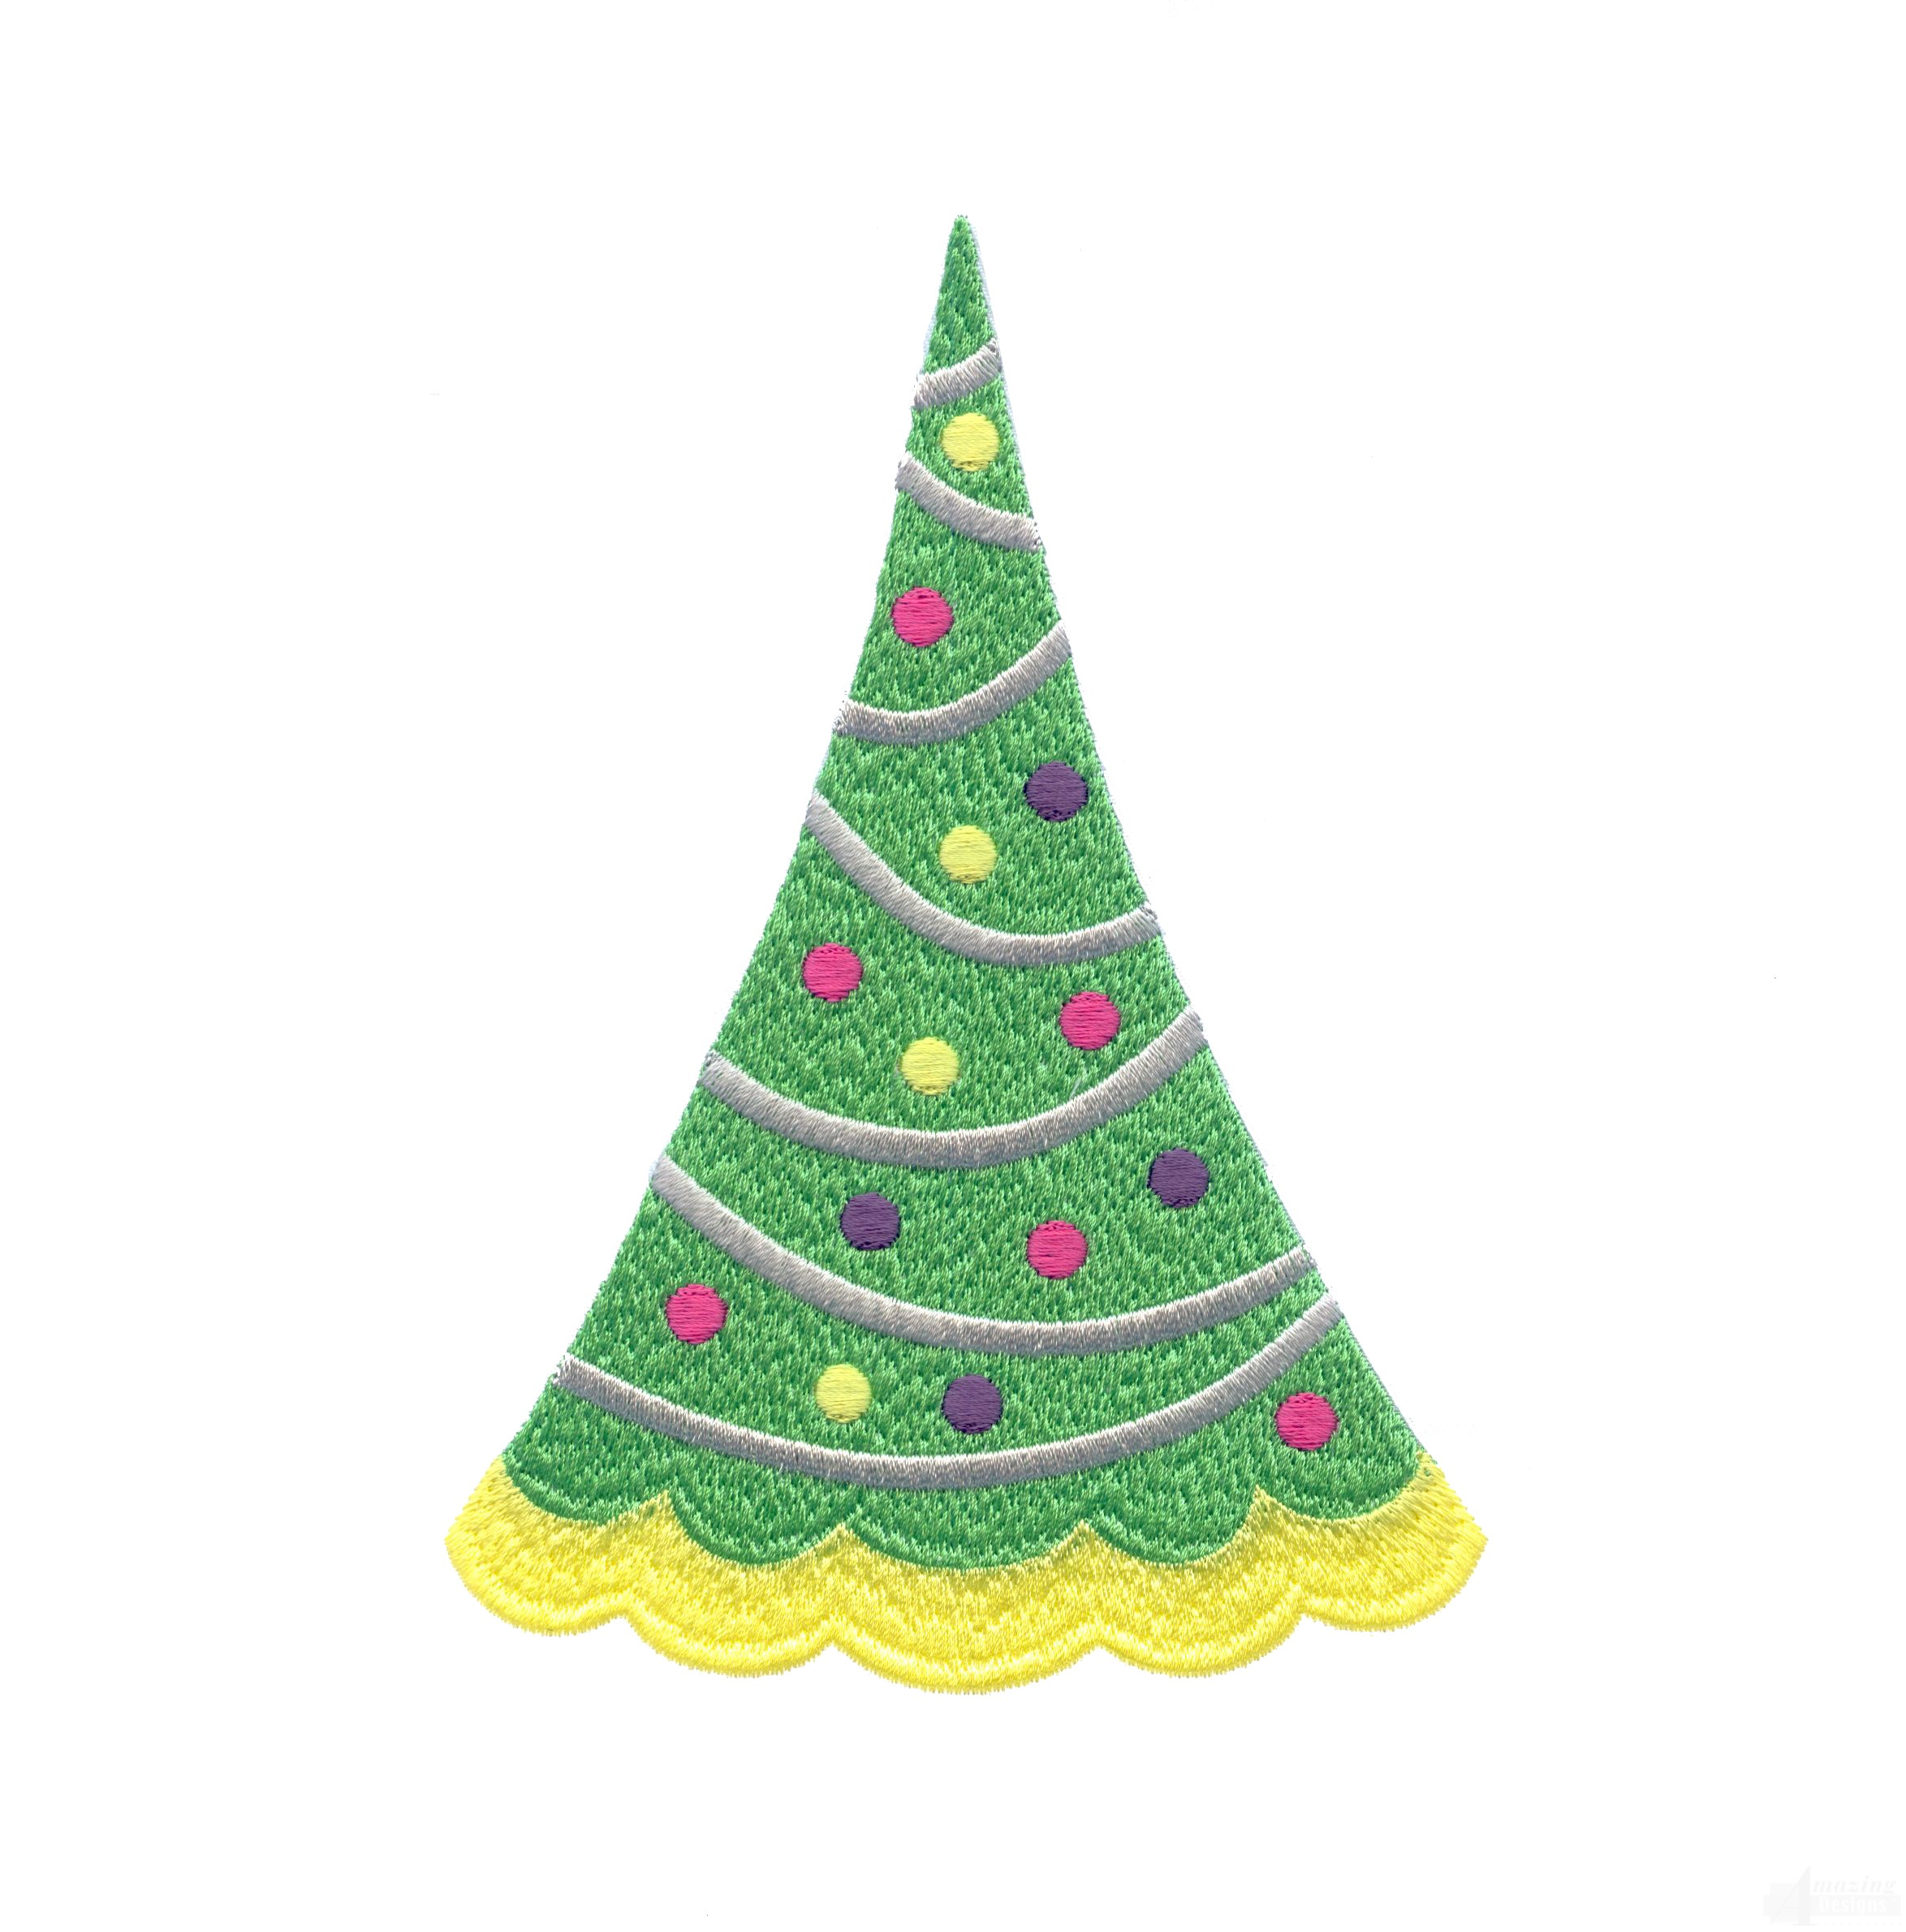 Simple Christmas Tree Embroidery Design